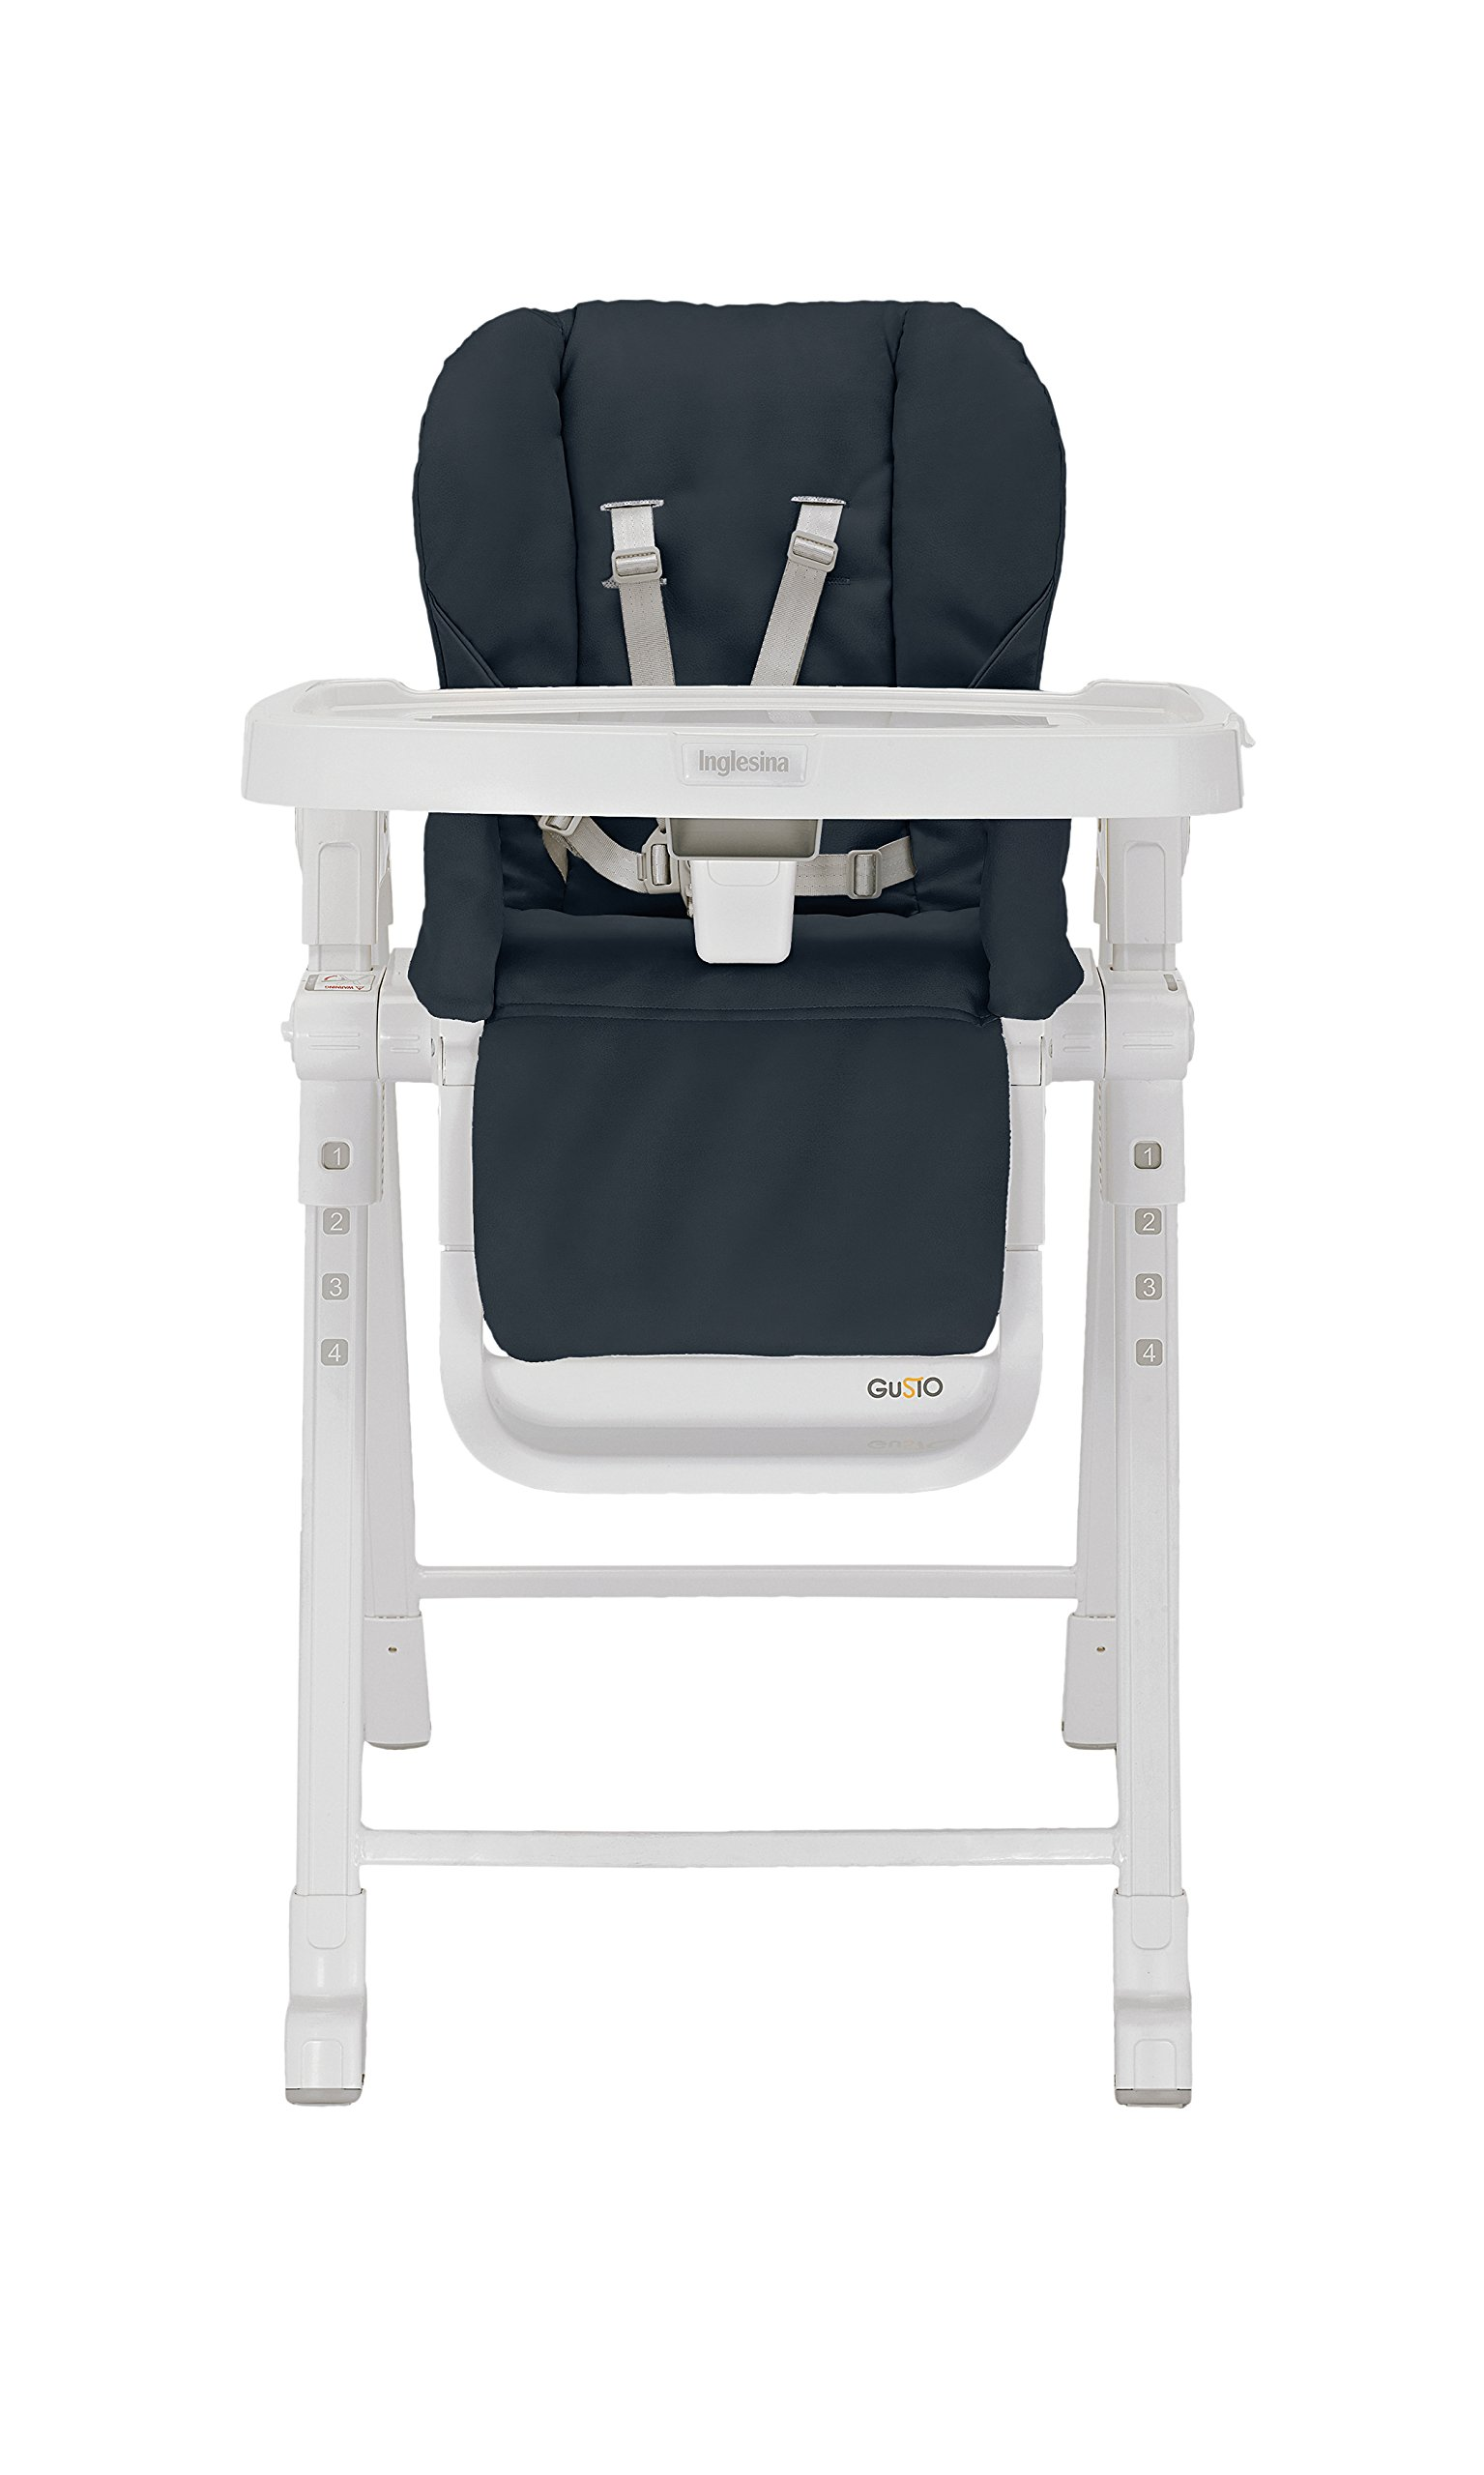 Inglesina Gusto HighChair - Fast and Easy Adjustable Baby High Chair for the Modern Family - Removable Tray Included {Graphite}